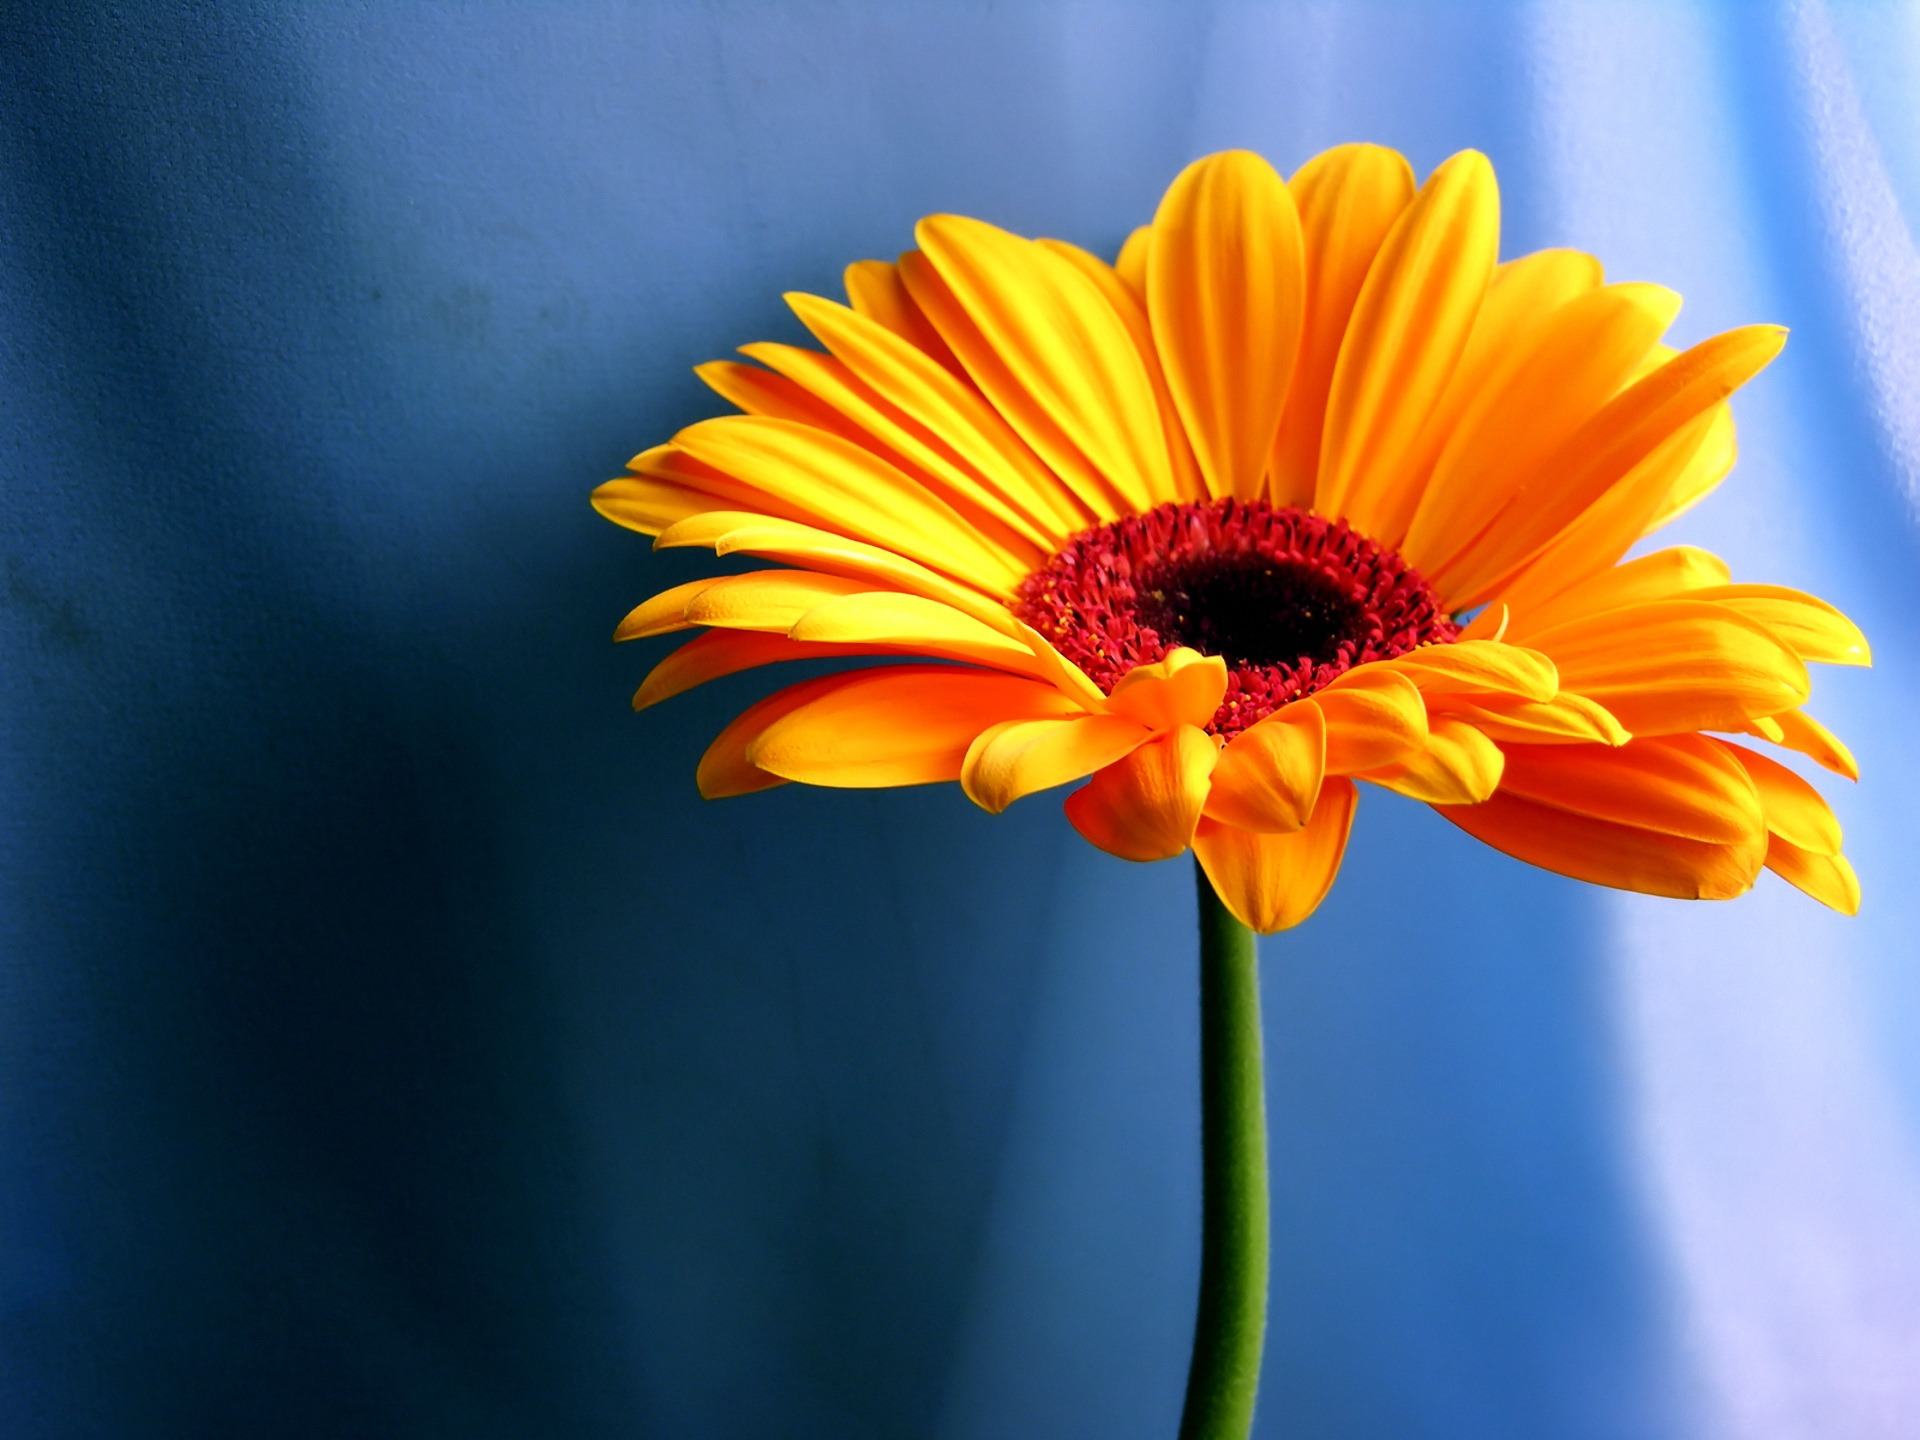 Orange flower wallpaper flowers nature wallpapers in jpg format orange flower wallpaper flowers nature wallpapers voltagebd Gallery